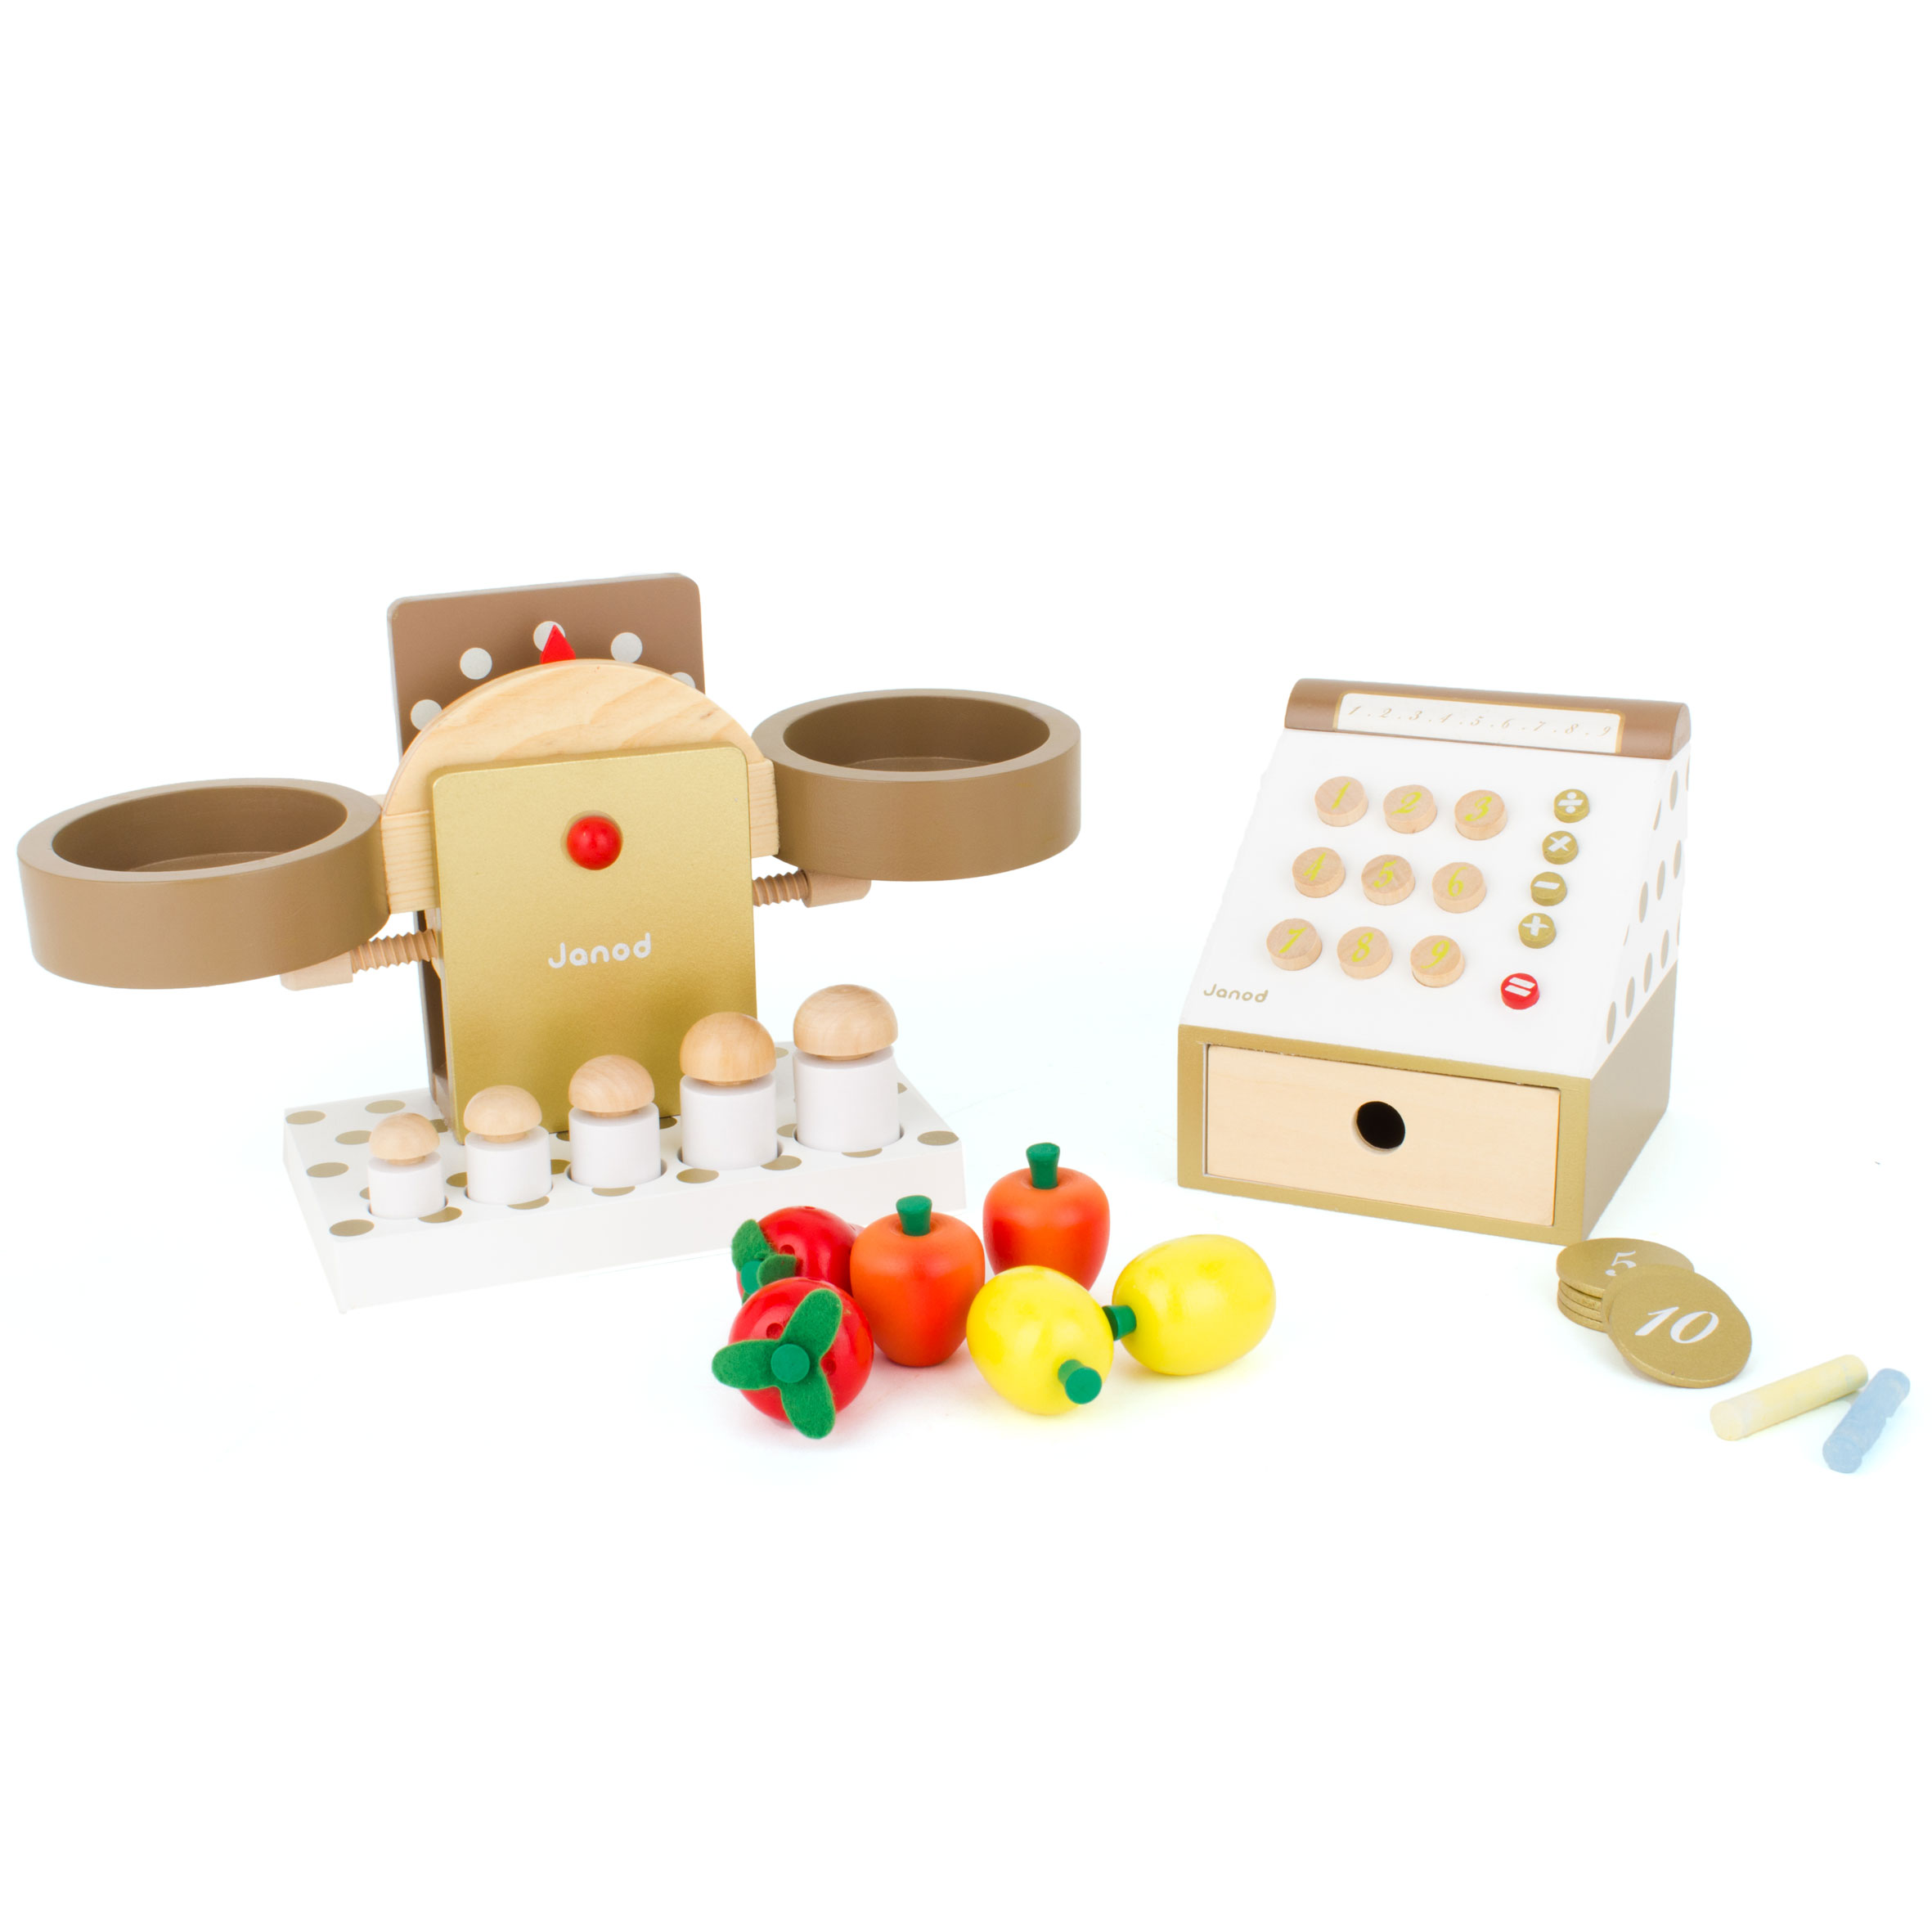 Janod Greengrocer set with scales and till | AlexandAlexa